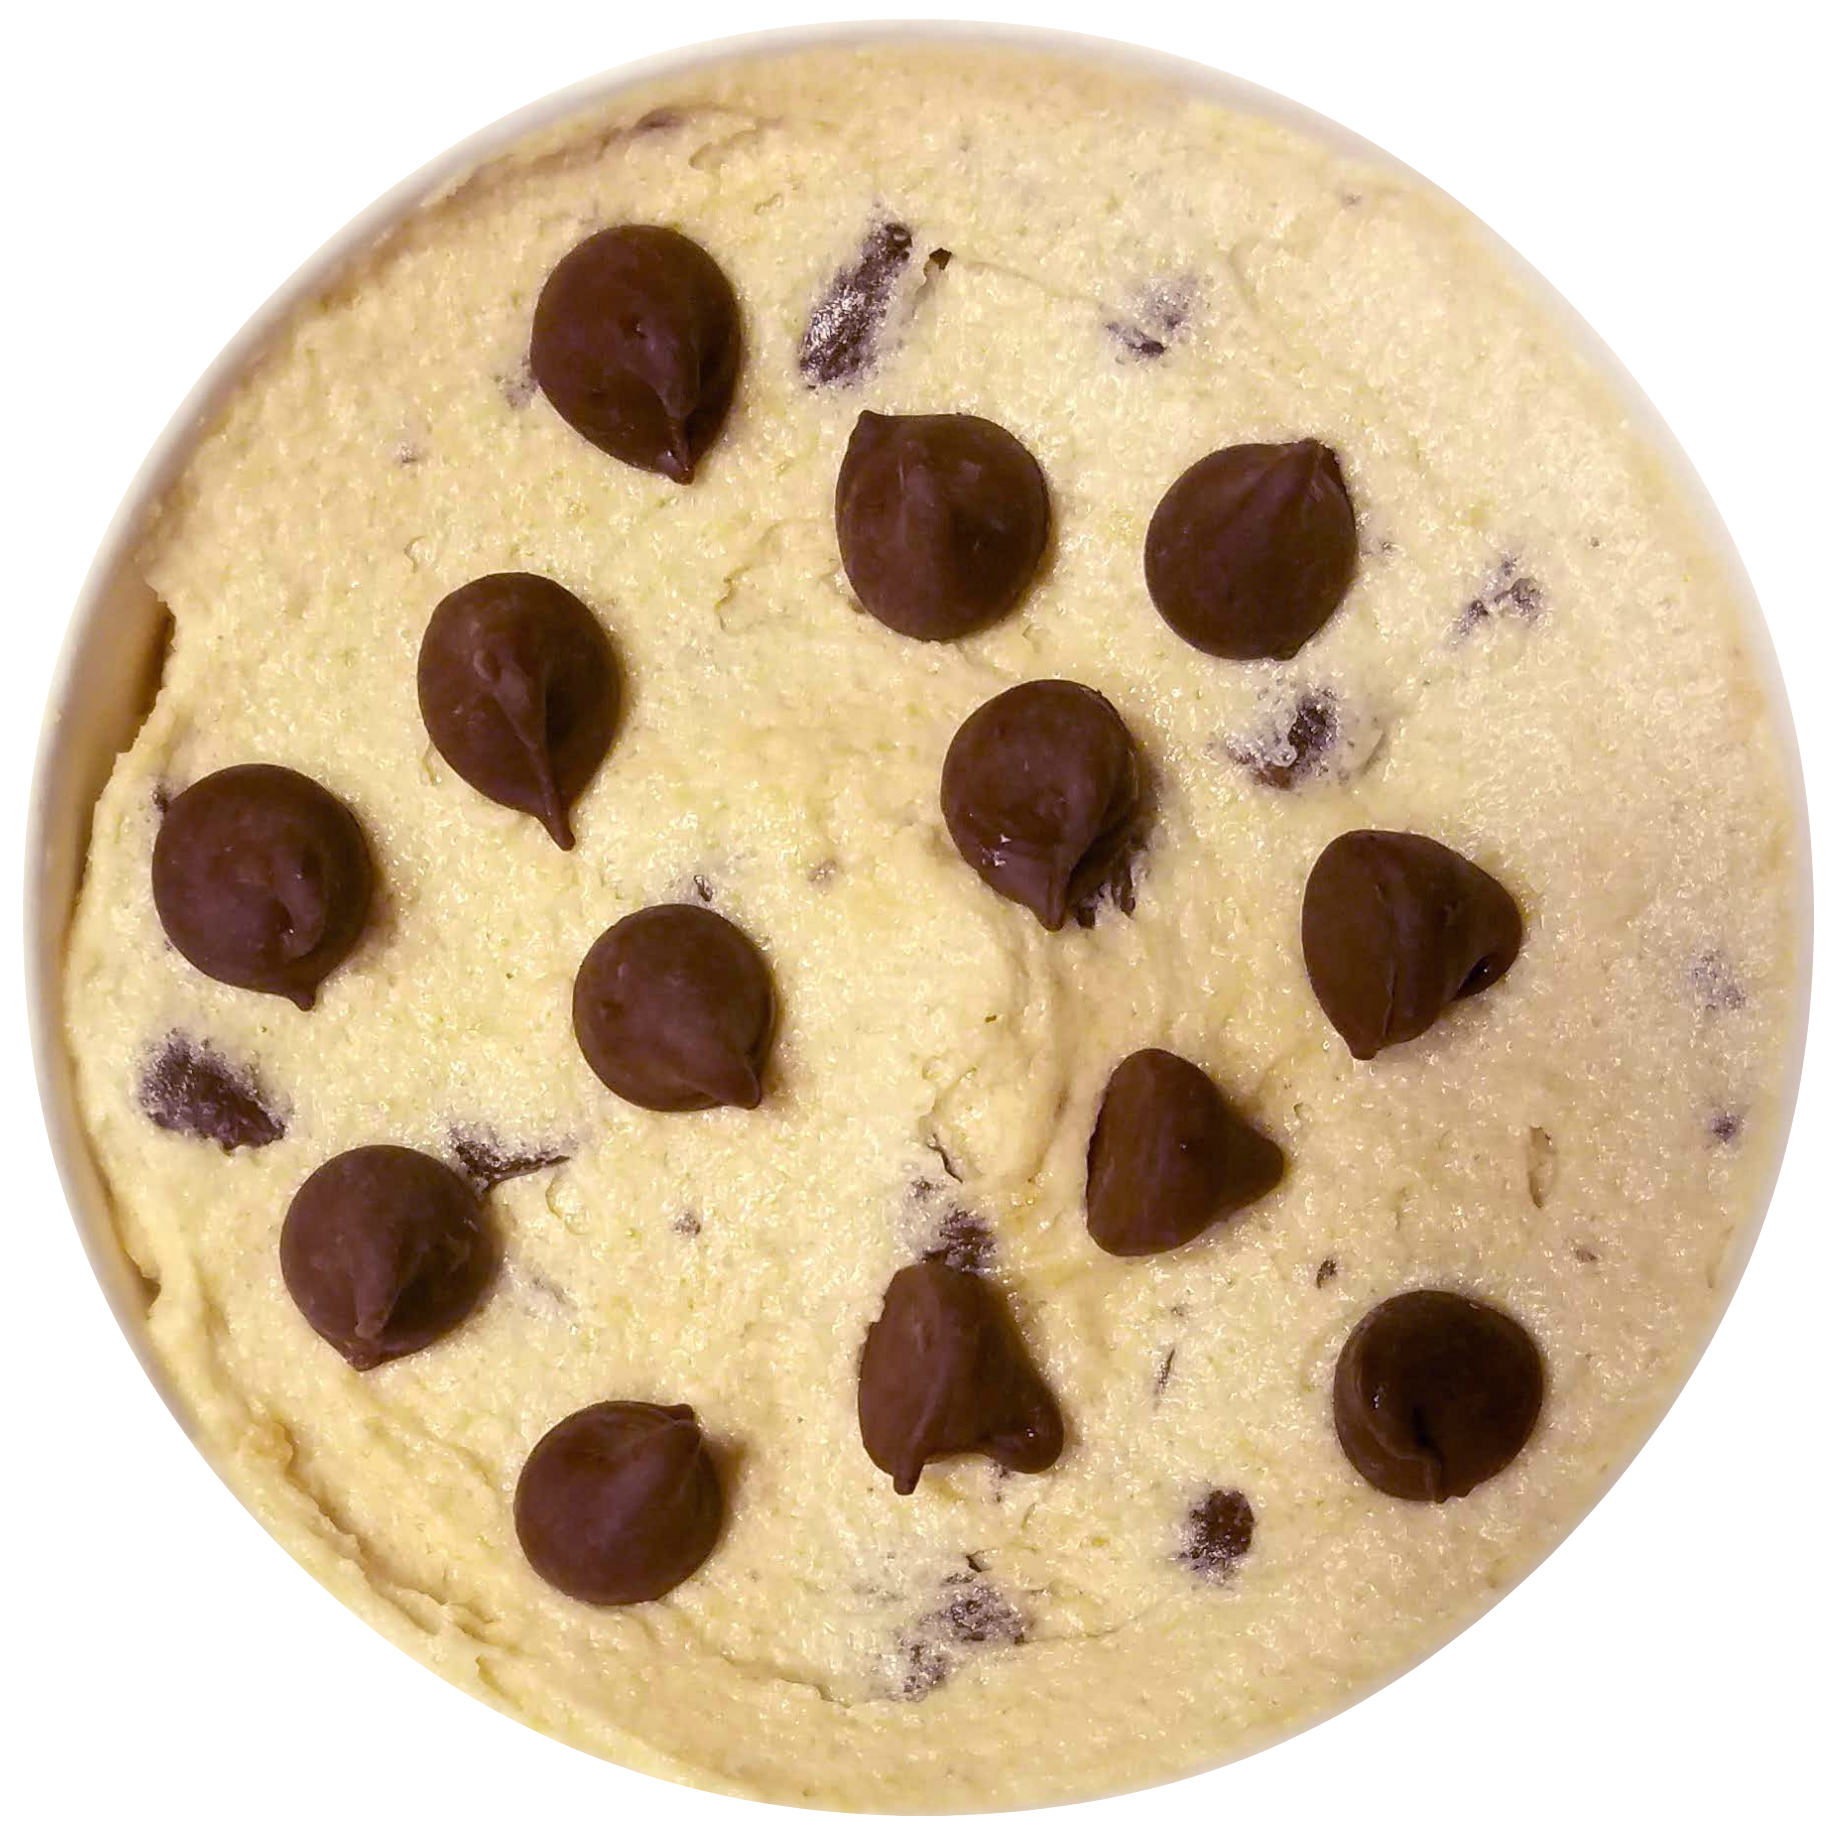 chocolate chip 2 - edited.png